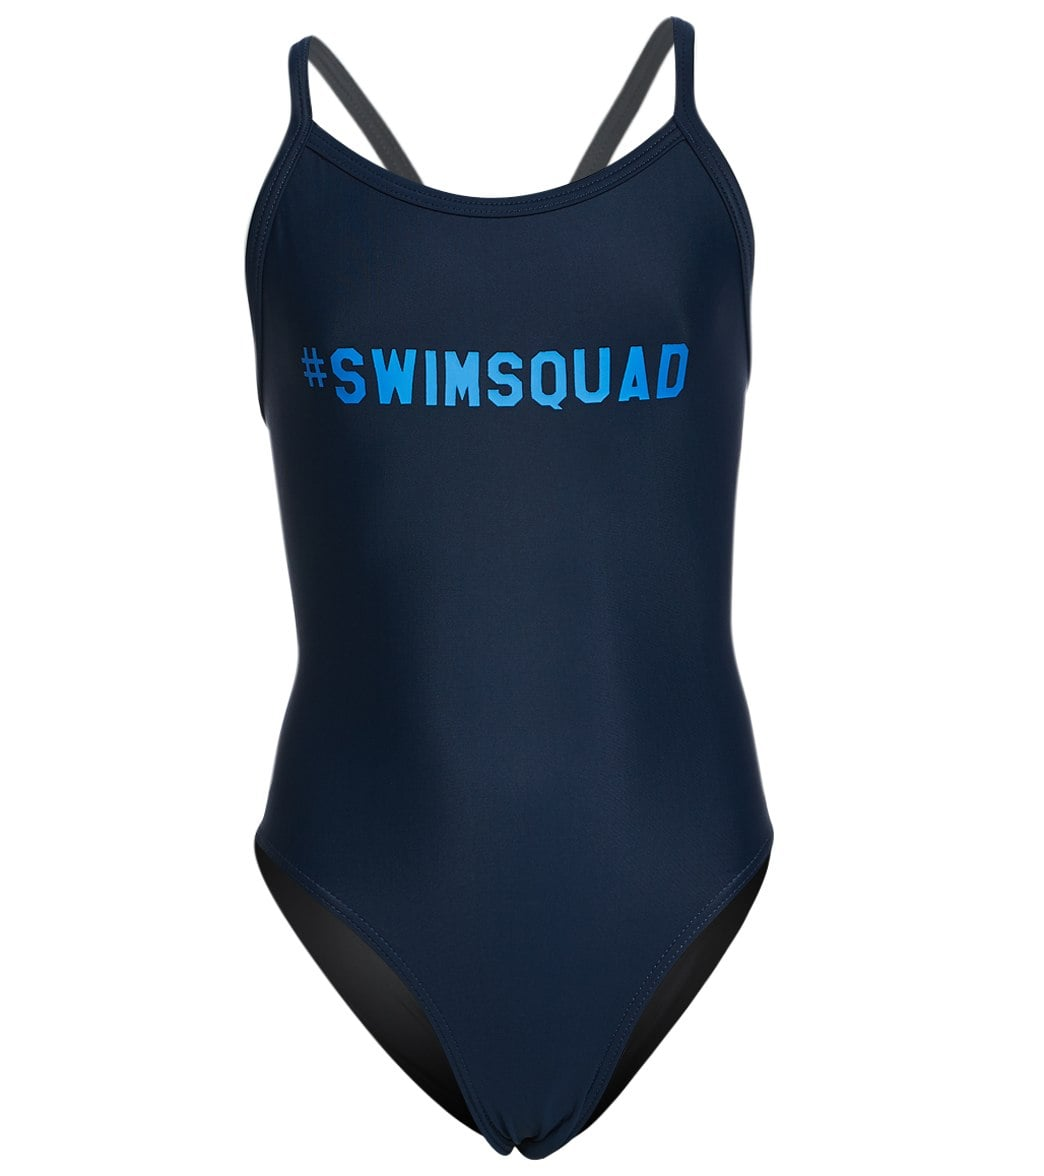 eef40cc38e8ae iSwim Hashtag Swim Squad Thin Strap One Piece Swimsuit Youth (22-28) at  SwimOutlet.com